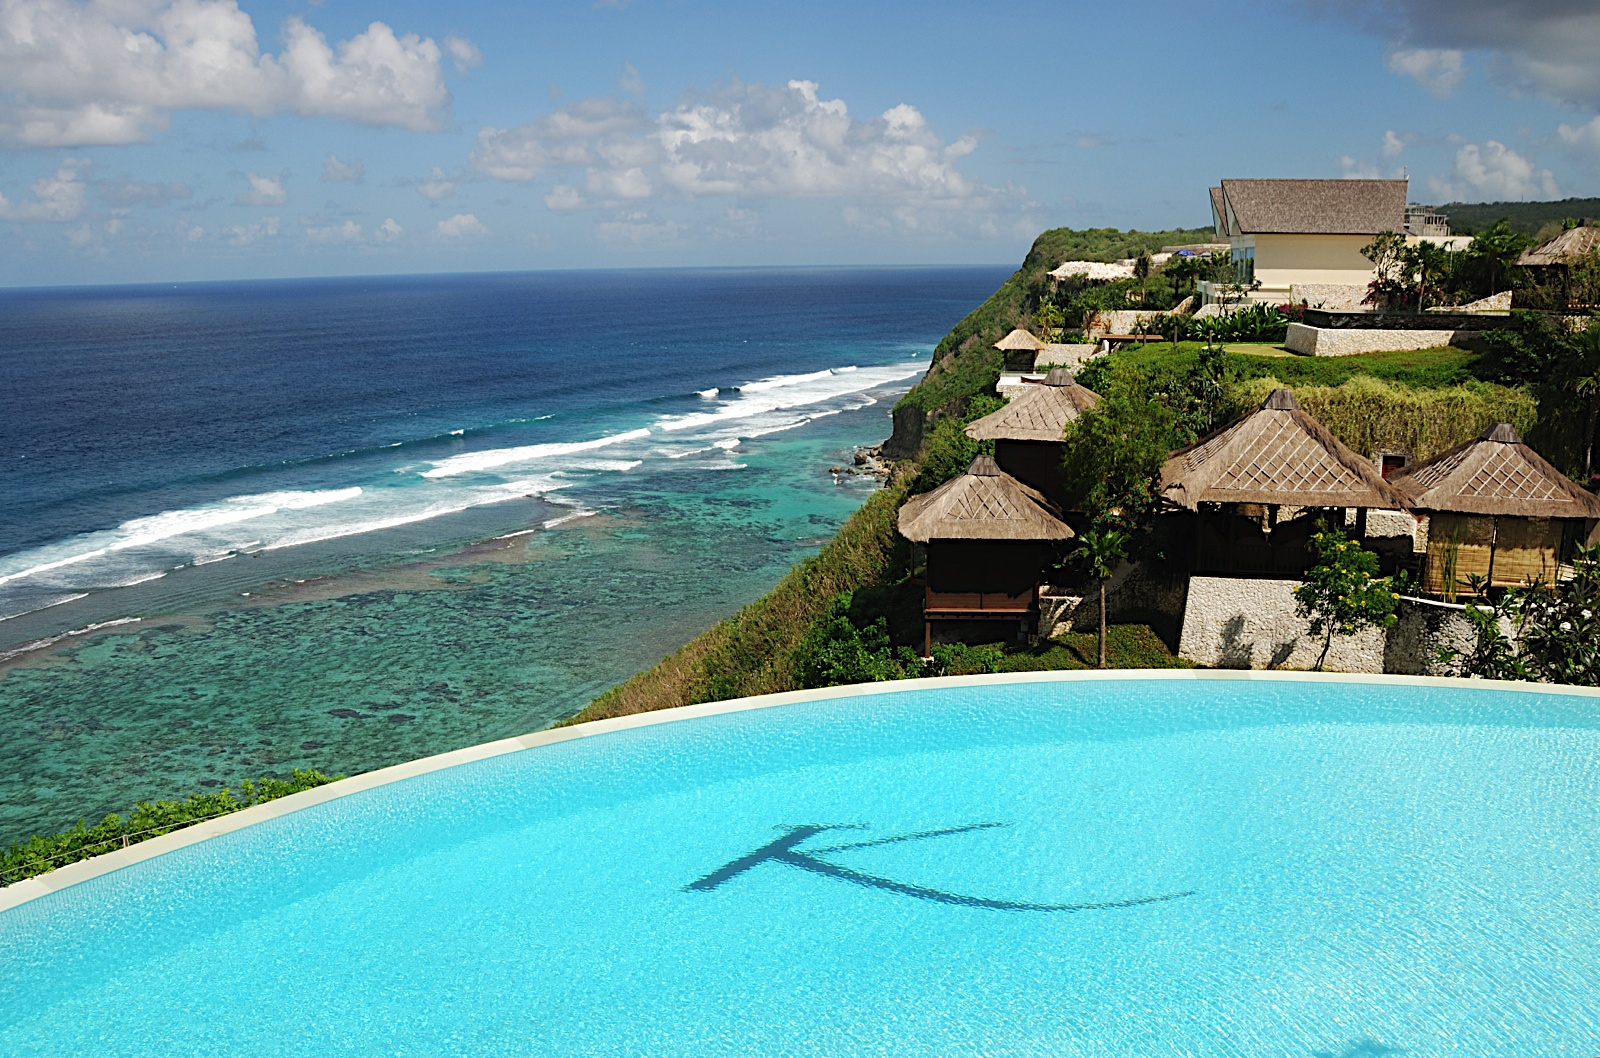 Cosmo's Guide to Spend One Day at Bali